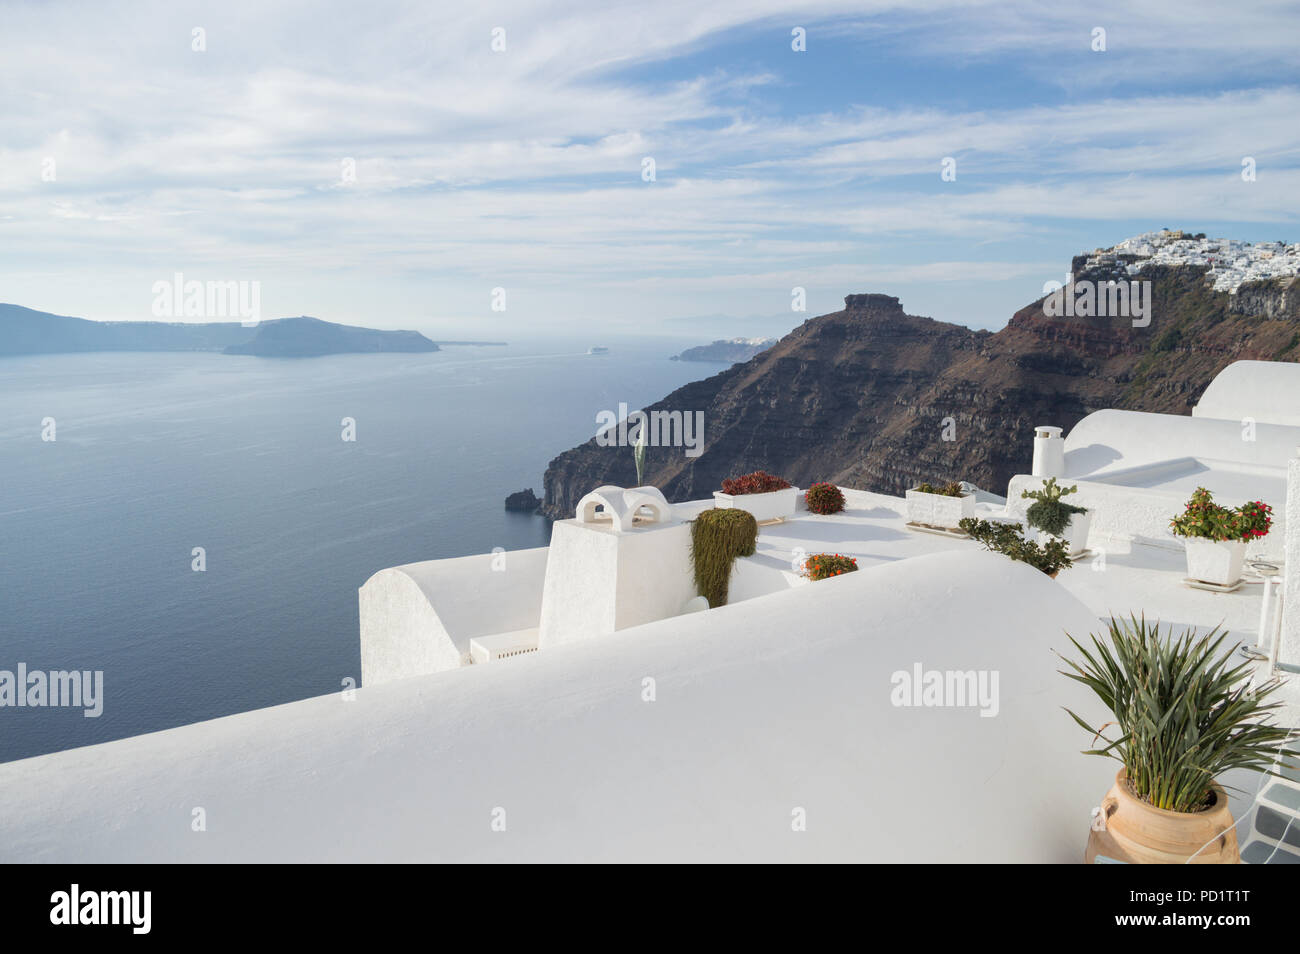 . Whitewashed Houses on Cliffs with Sea View in Fira  Santorini